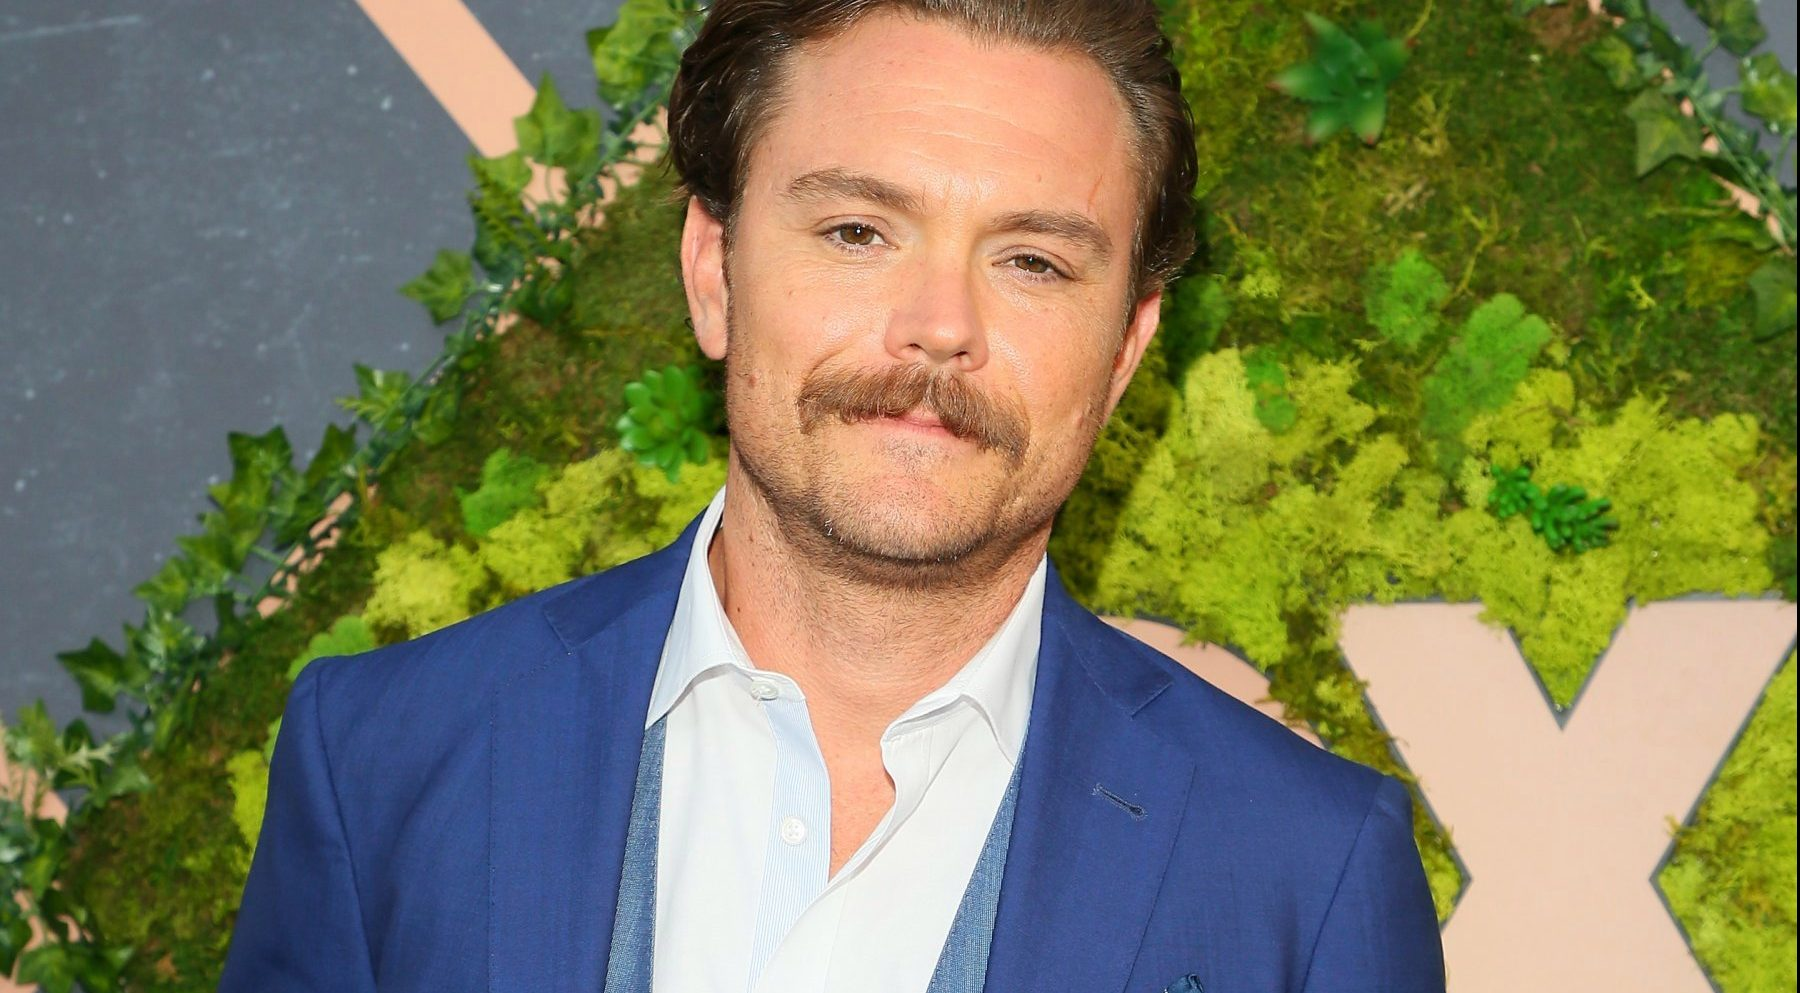 WEST HOLLYWOOD, CA - SEPTEMBER 25: Clayne Crawford attends the FOX Fall Party on September 25, 2017 in Los Angeles, California. (Photo by JB Lacroix/ WireImage)